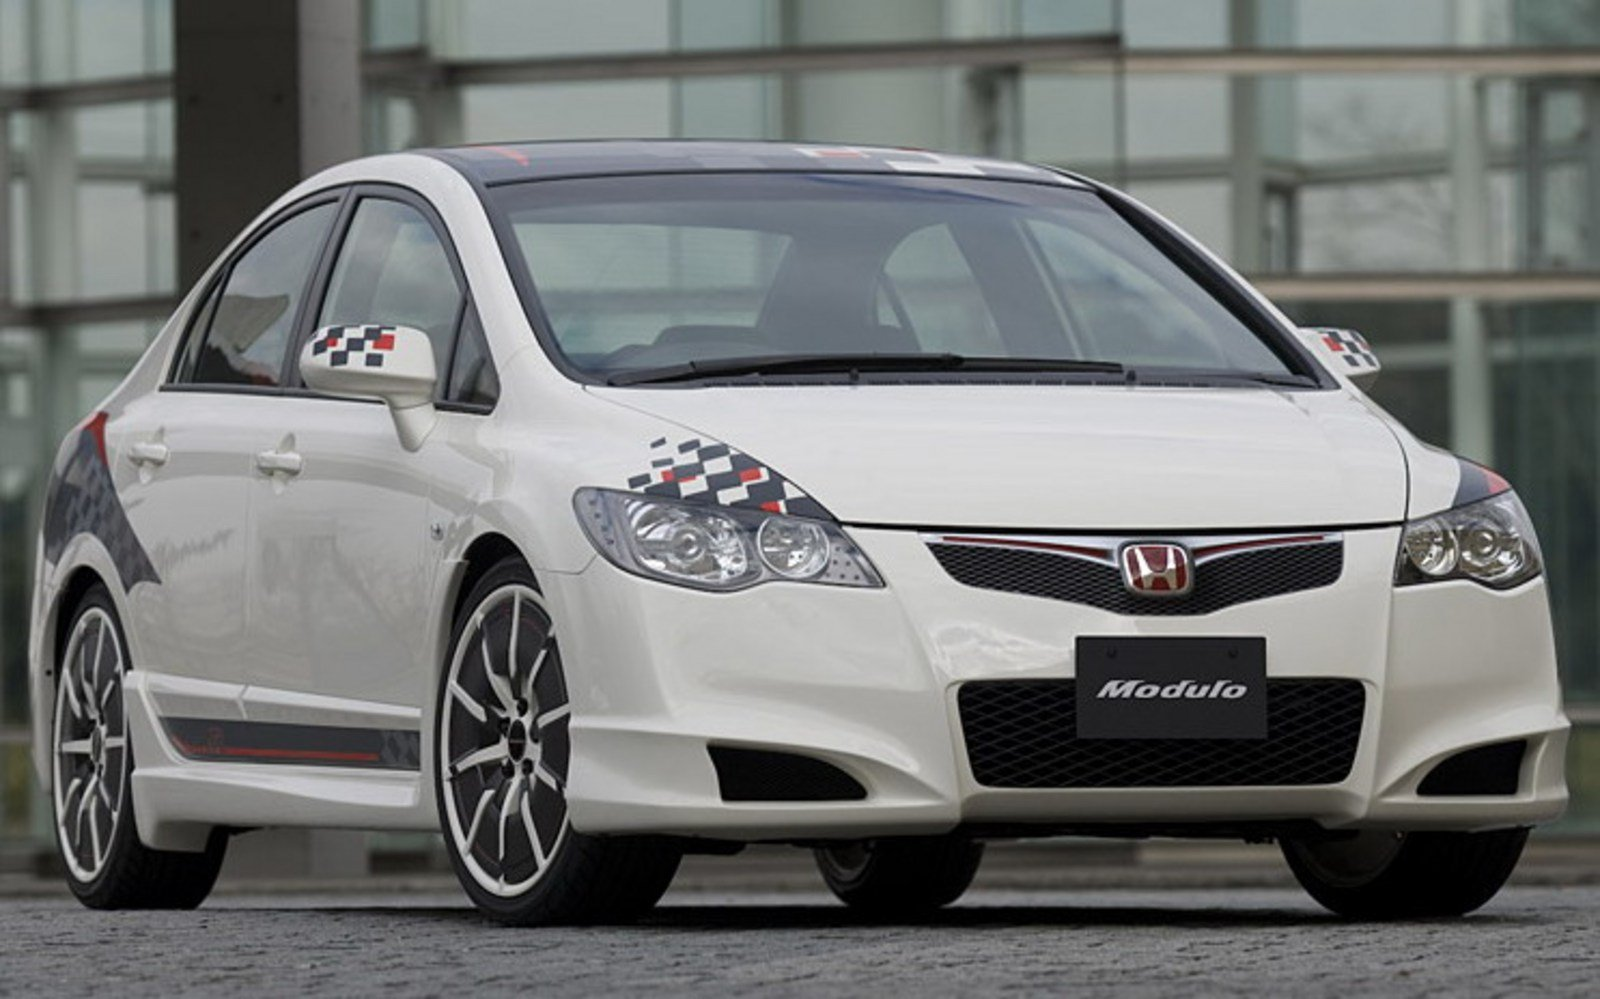 2008 honda civic type r modulo review top speed. Black Bedroom Furniture Sets. Home Design Ideas